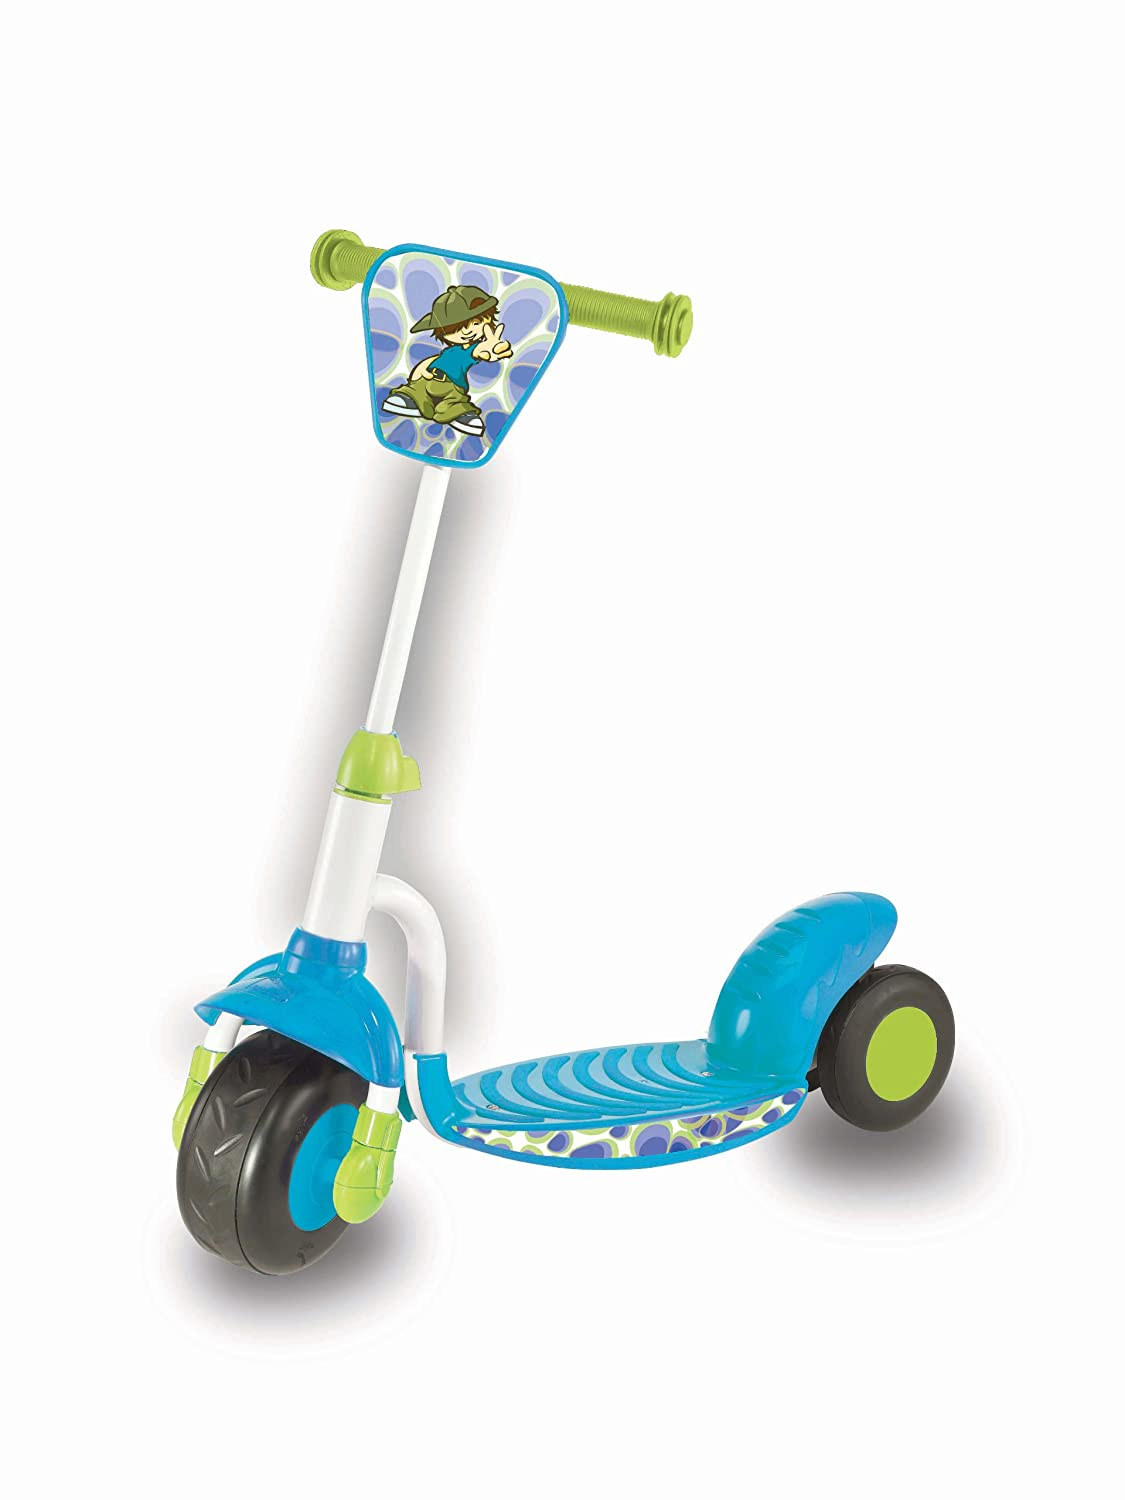 Smart Trike Scooter - Patinete de juguete, color azul y ...